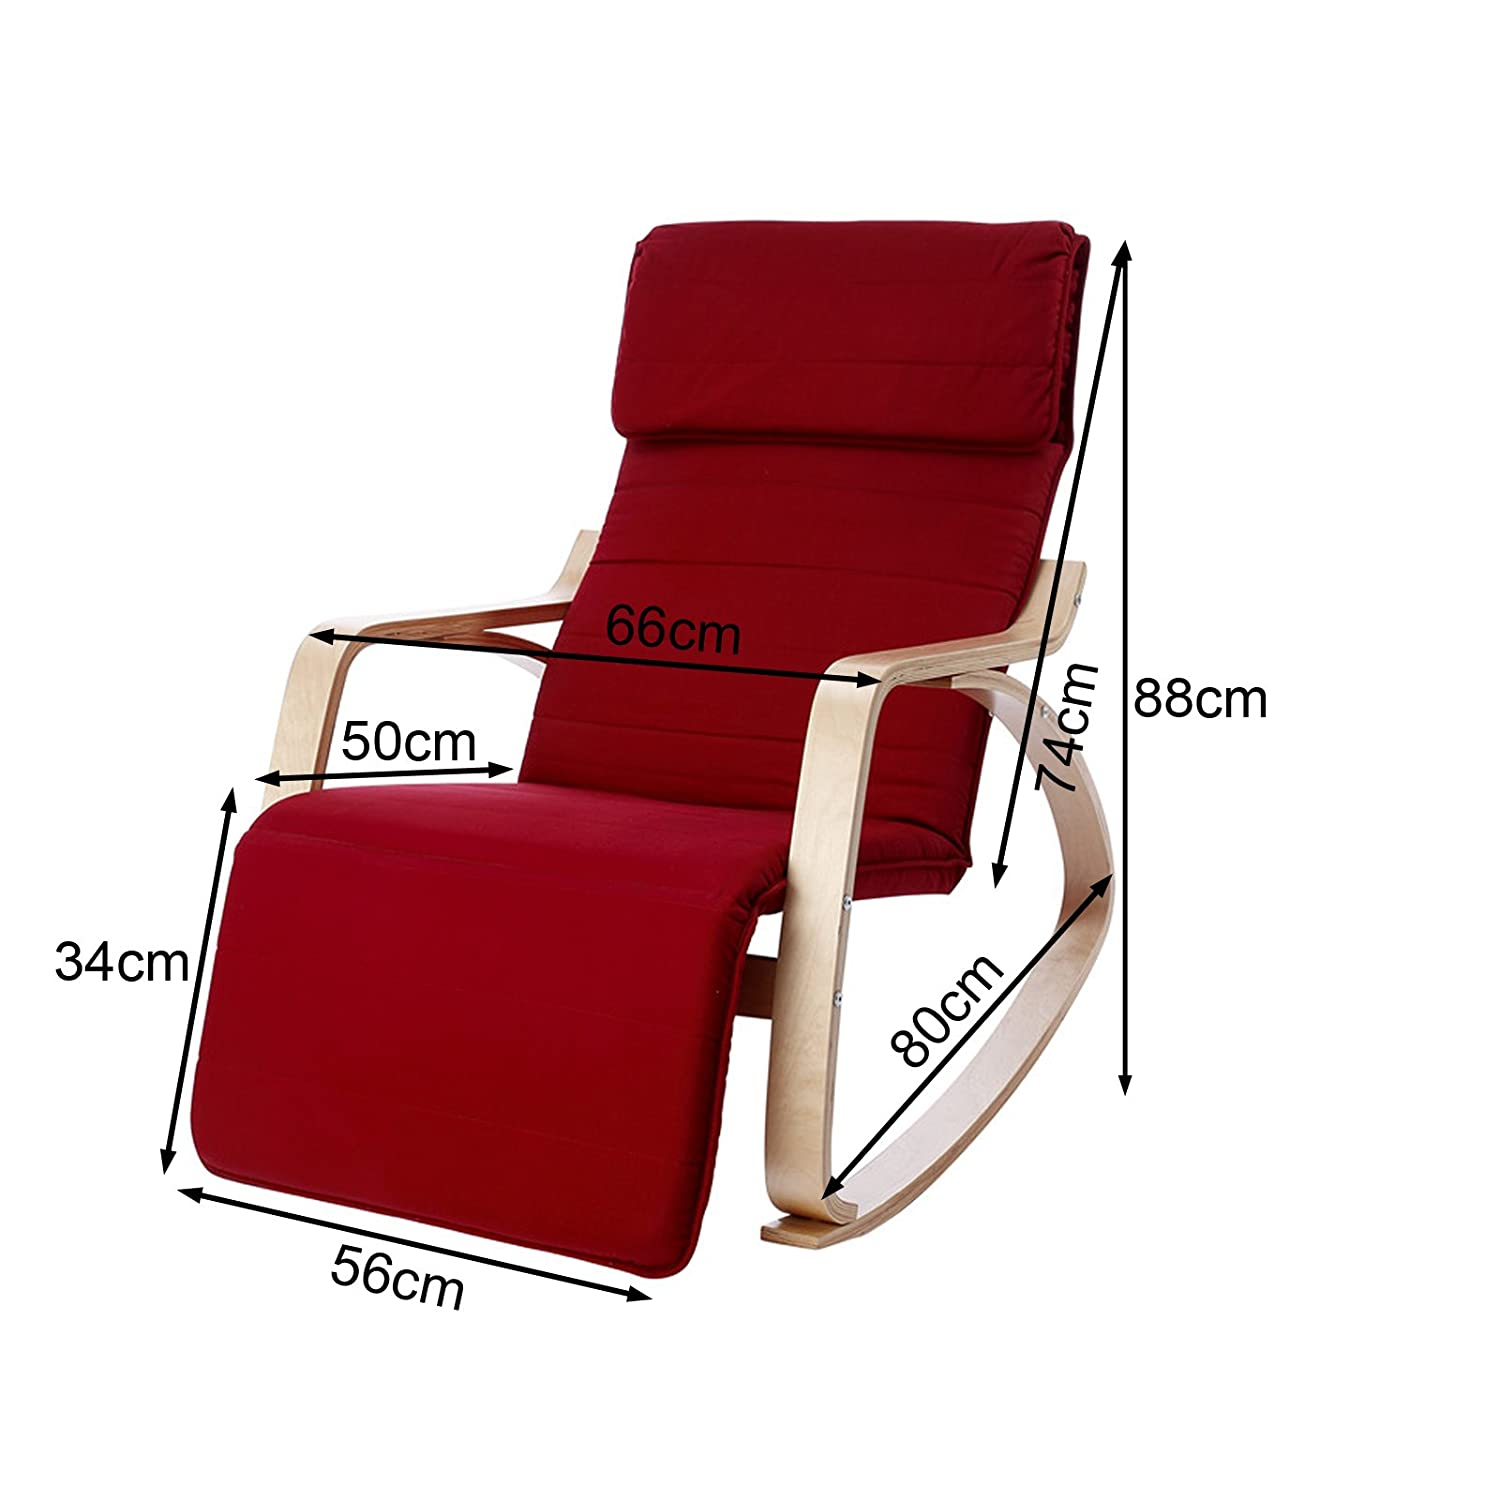 rocking chair footrest spandex covers amazon sobuy relaxing lounge with adjustable